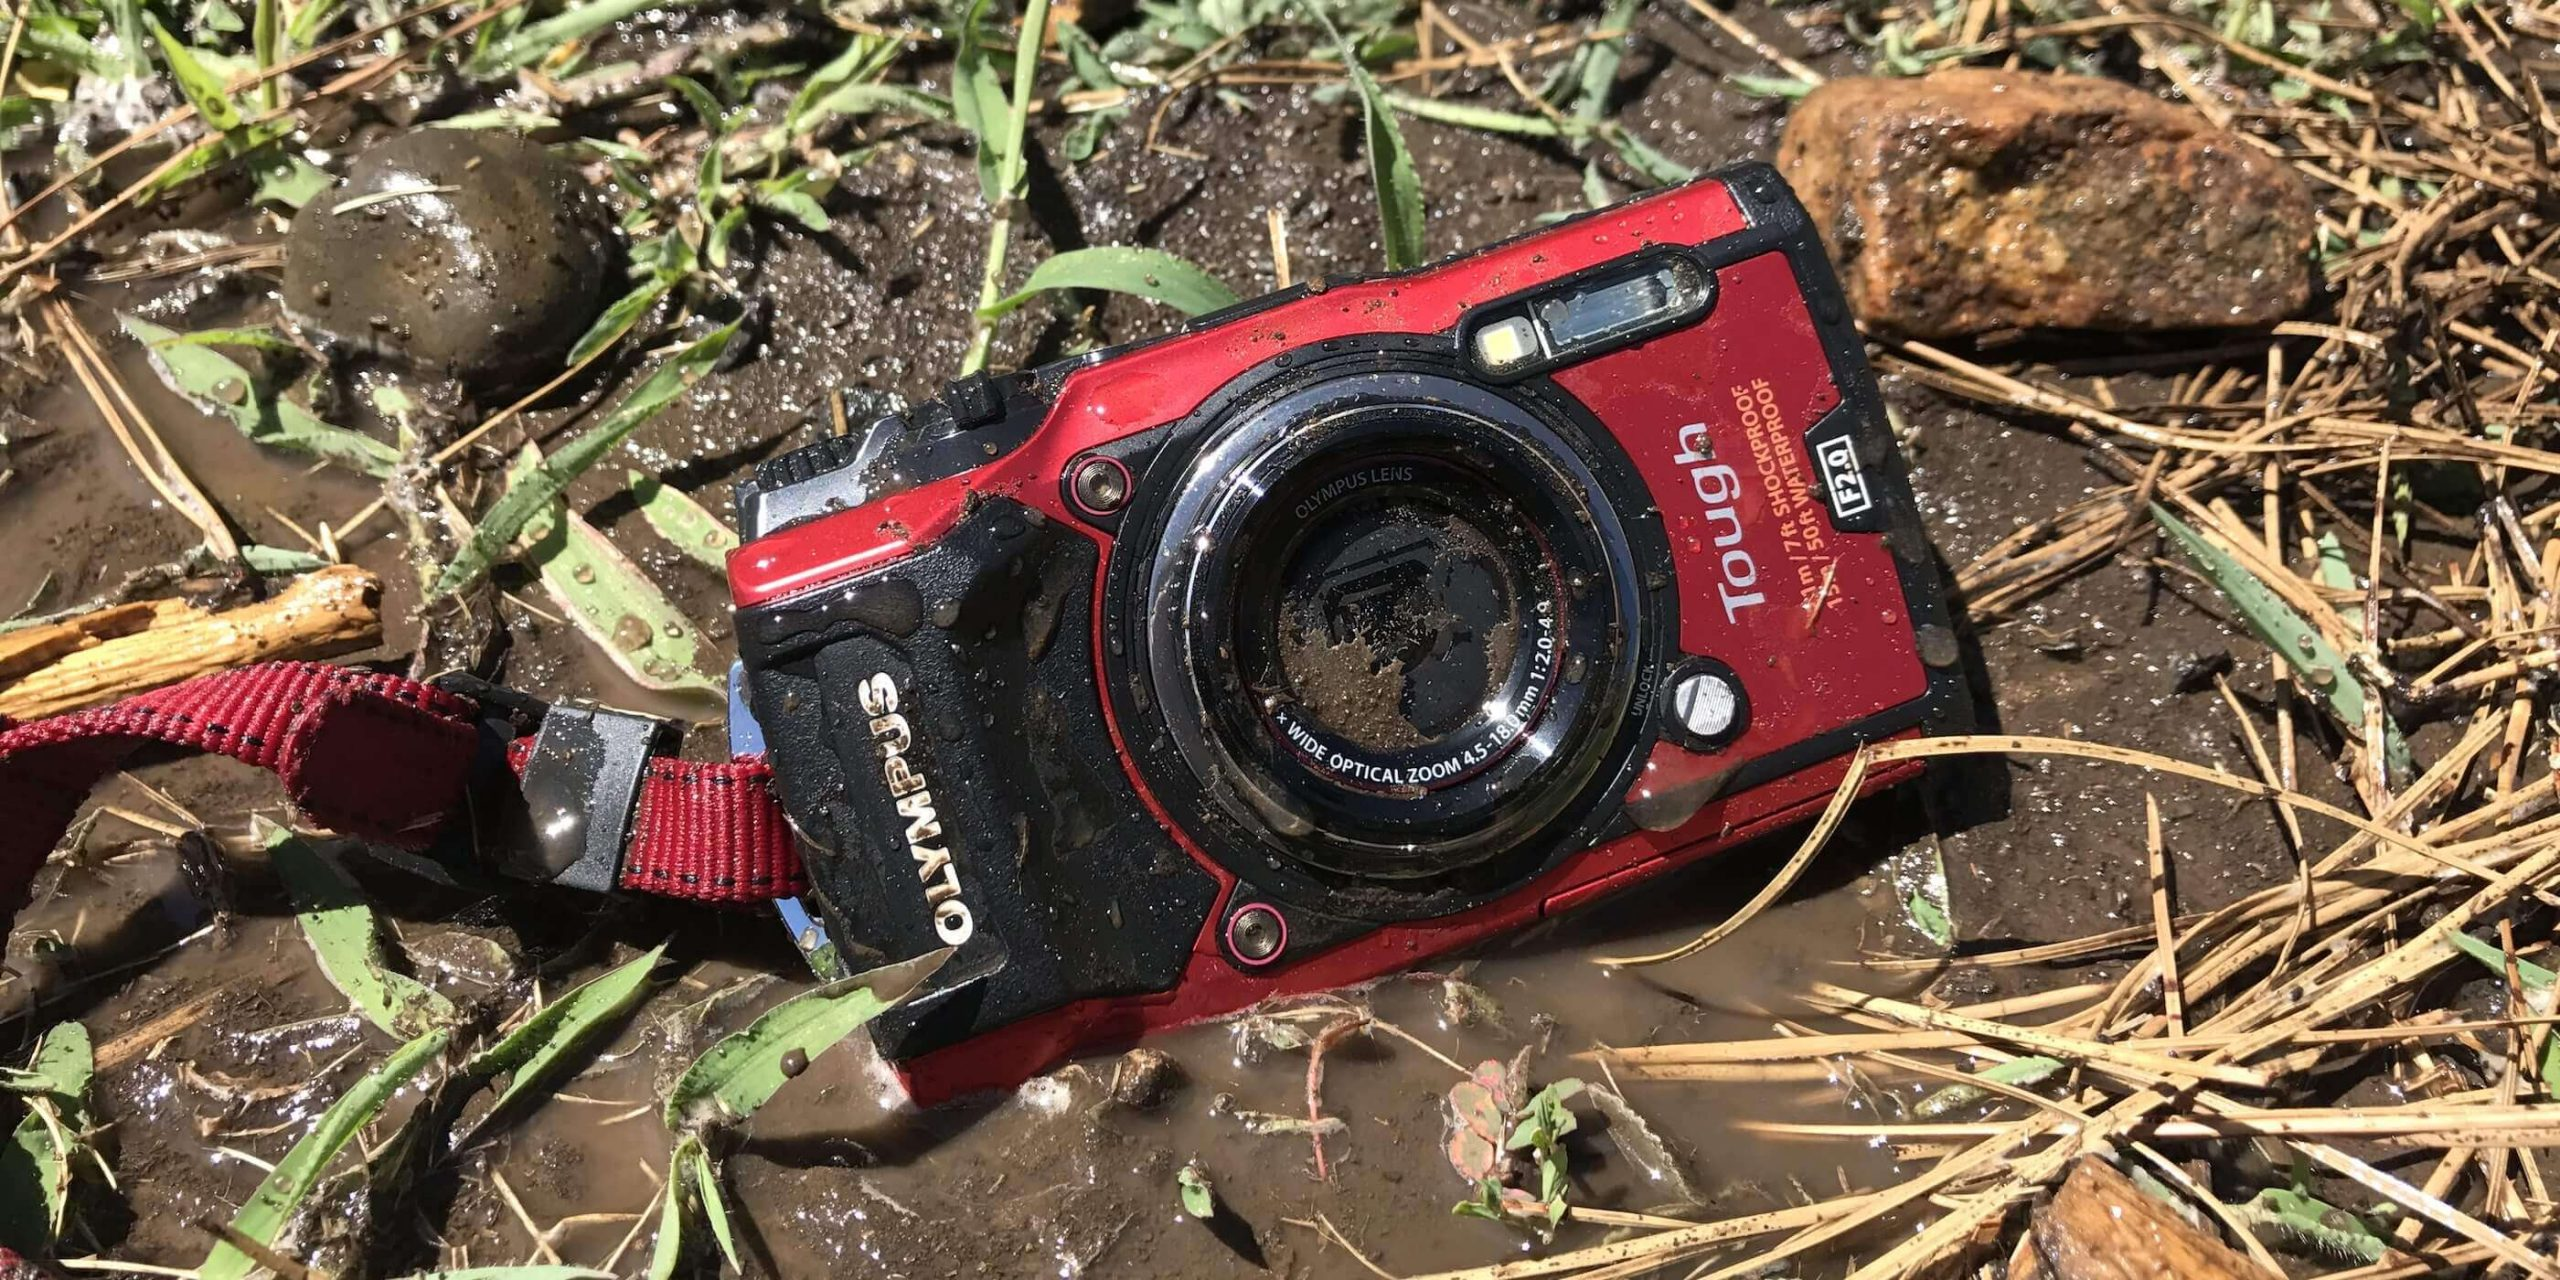 Who should own this camera